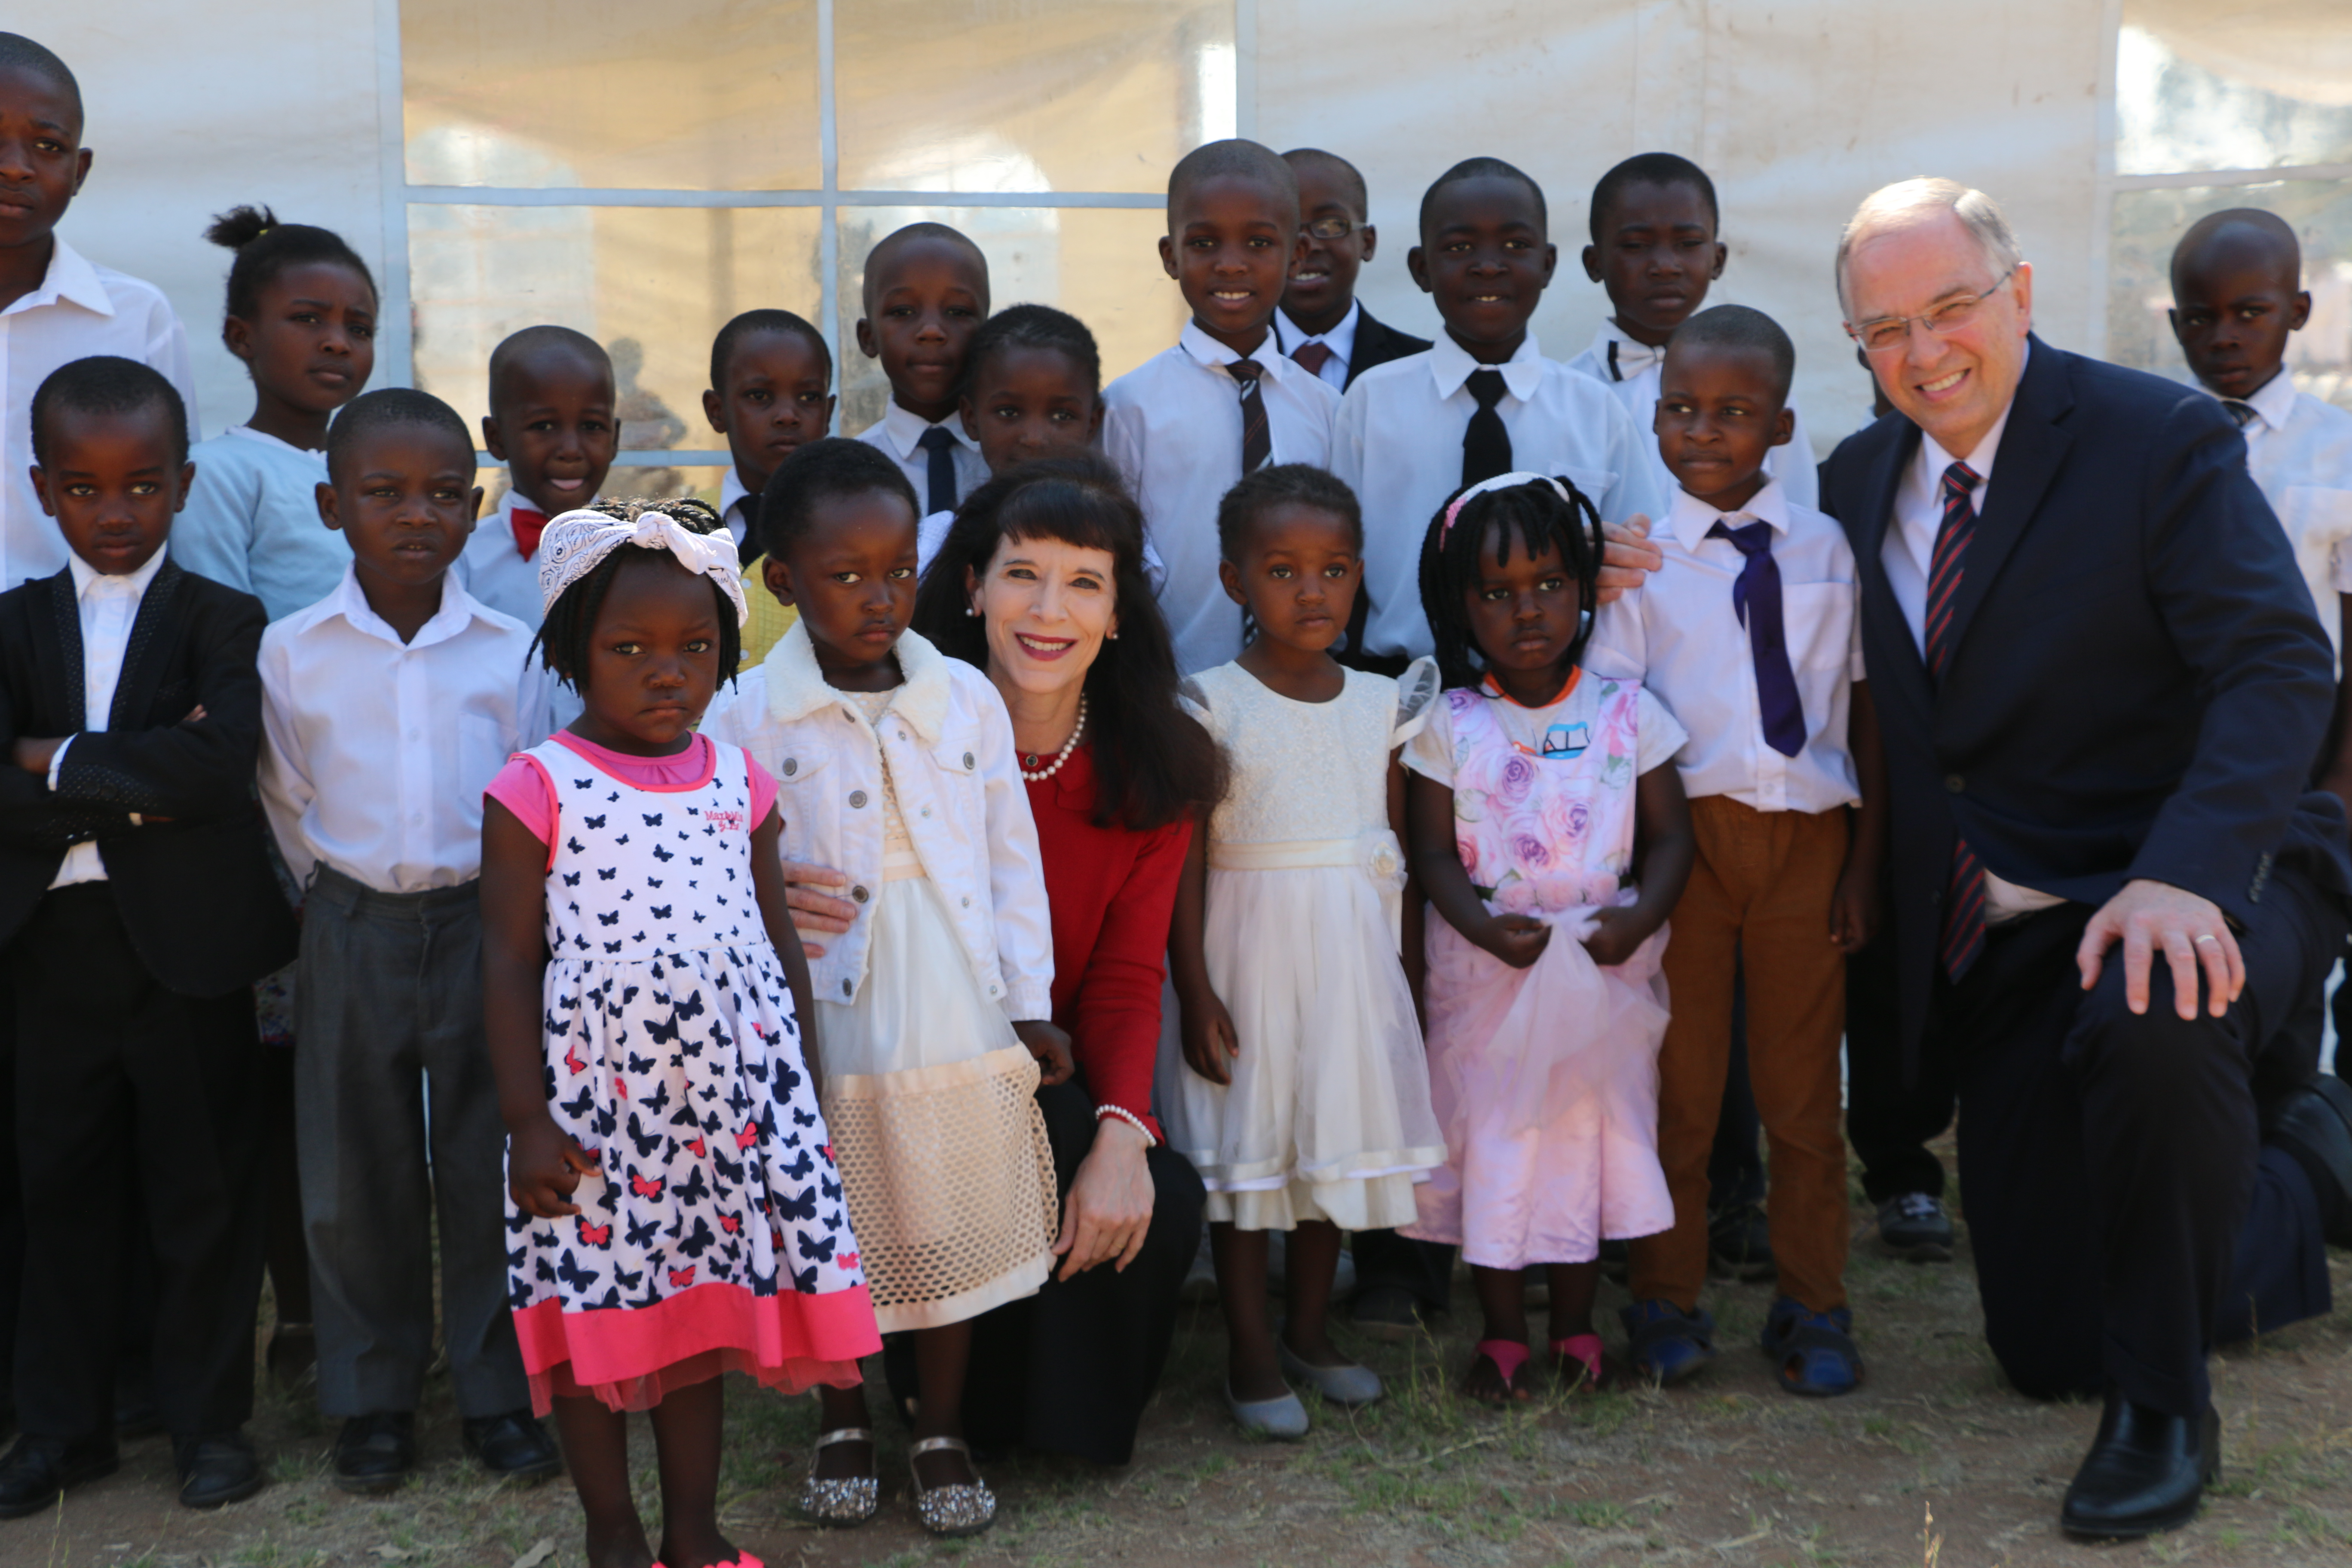 Elder Neil L. Andersen of the Quorum of the Twelve Apostles, center with Sister Kathy Andersen gather with children after a member meeting in Zimbabwe on Nov. 18. 2018.